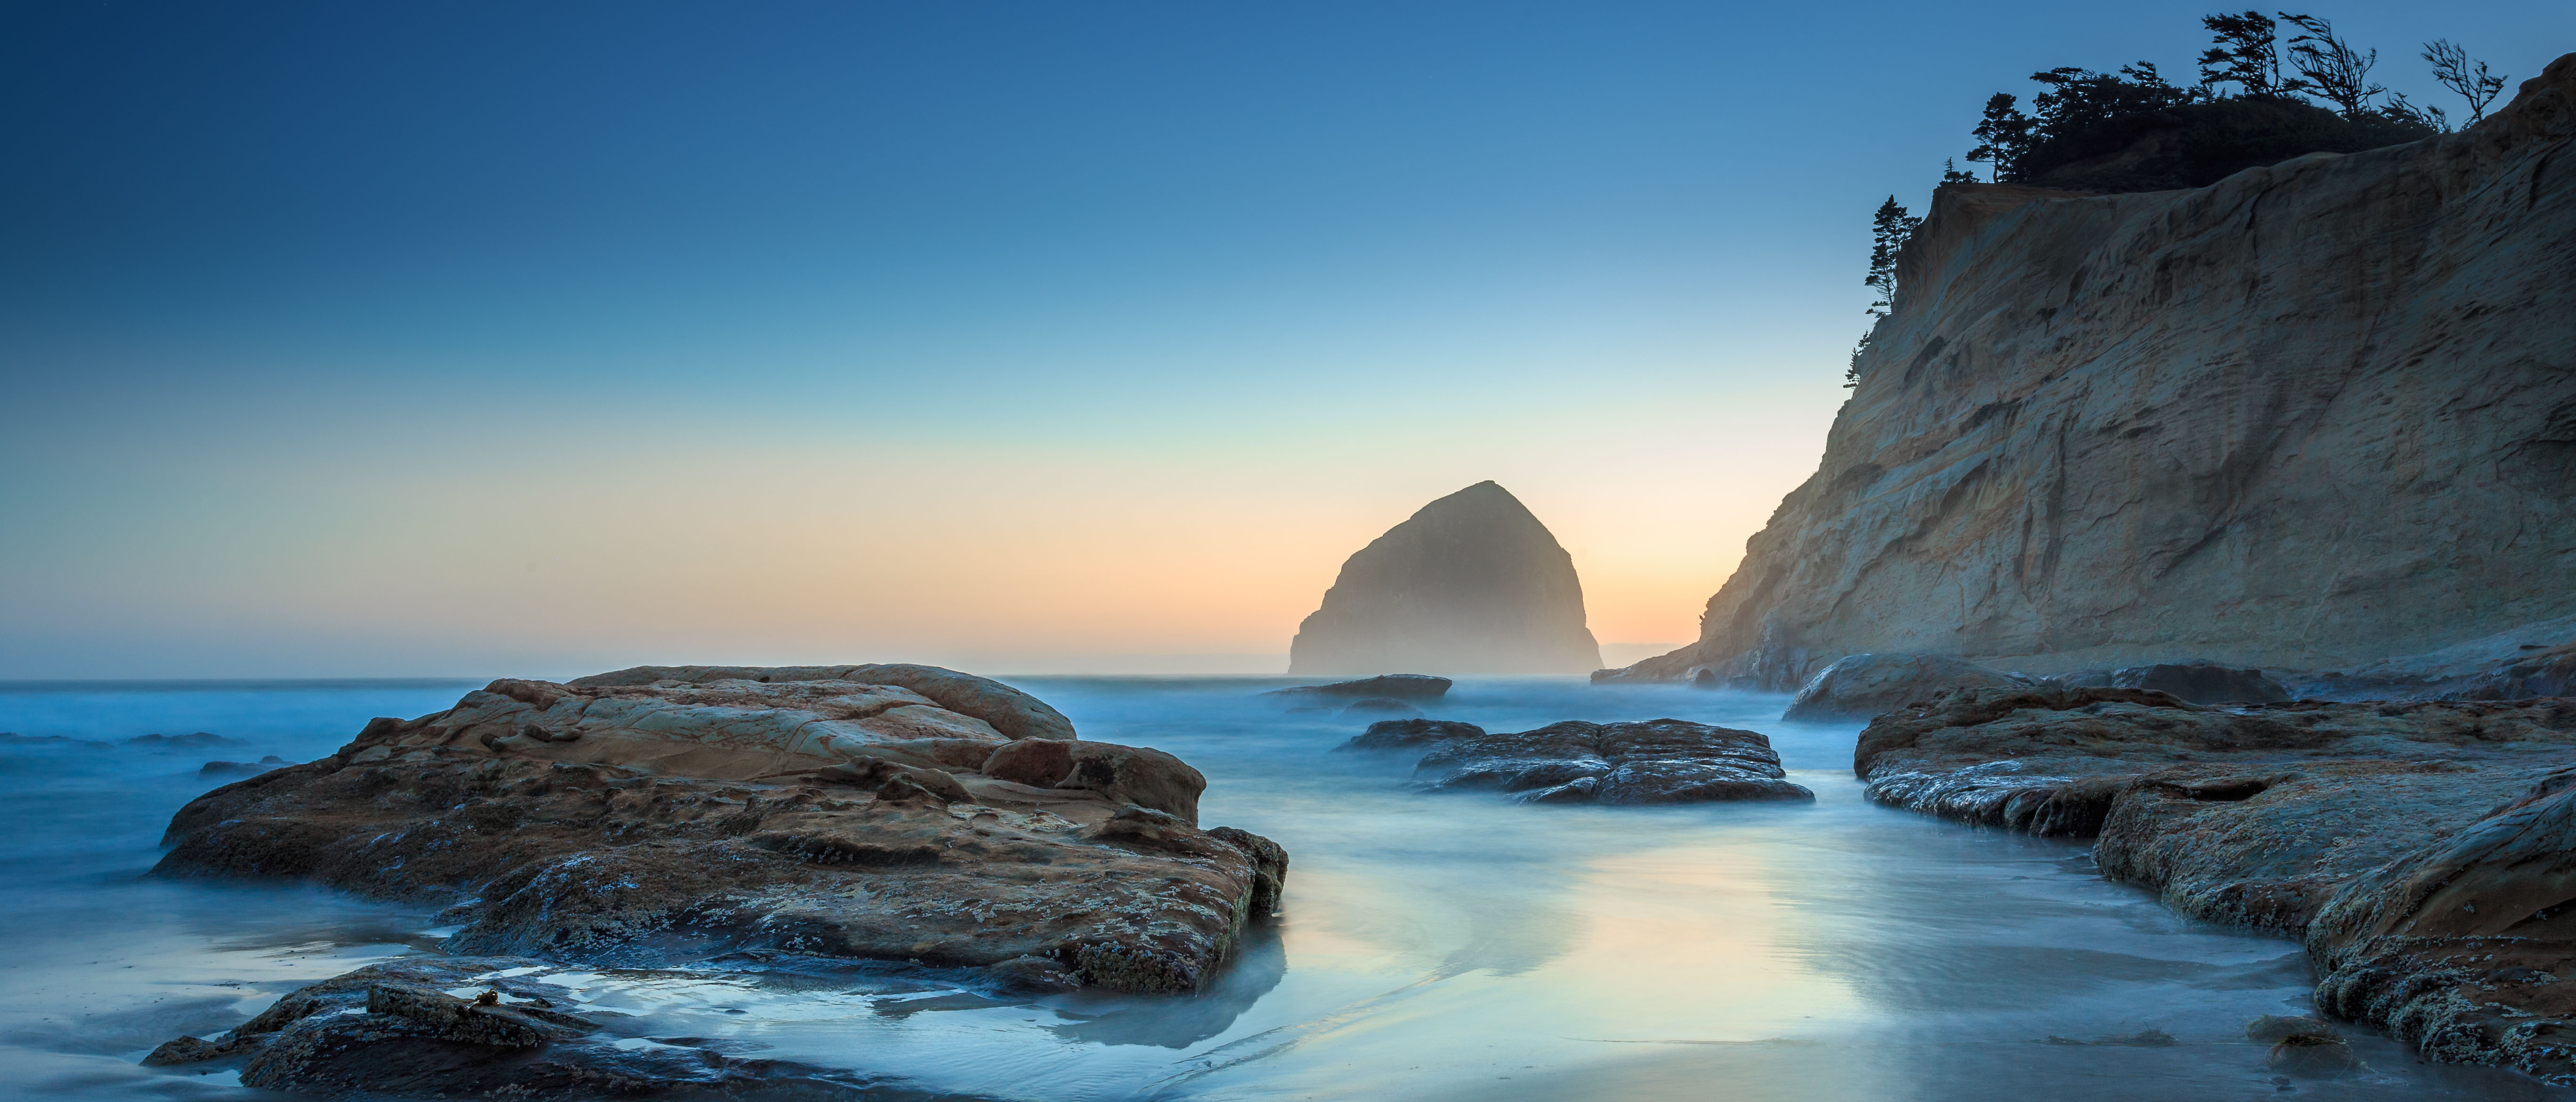 Scenic view of Oregon Coast near Gleneden Beach. Photo from Getty Images.